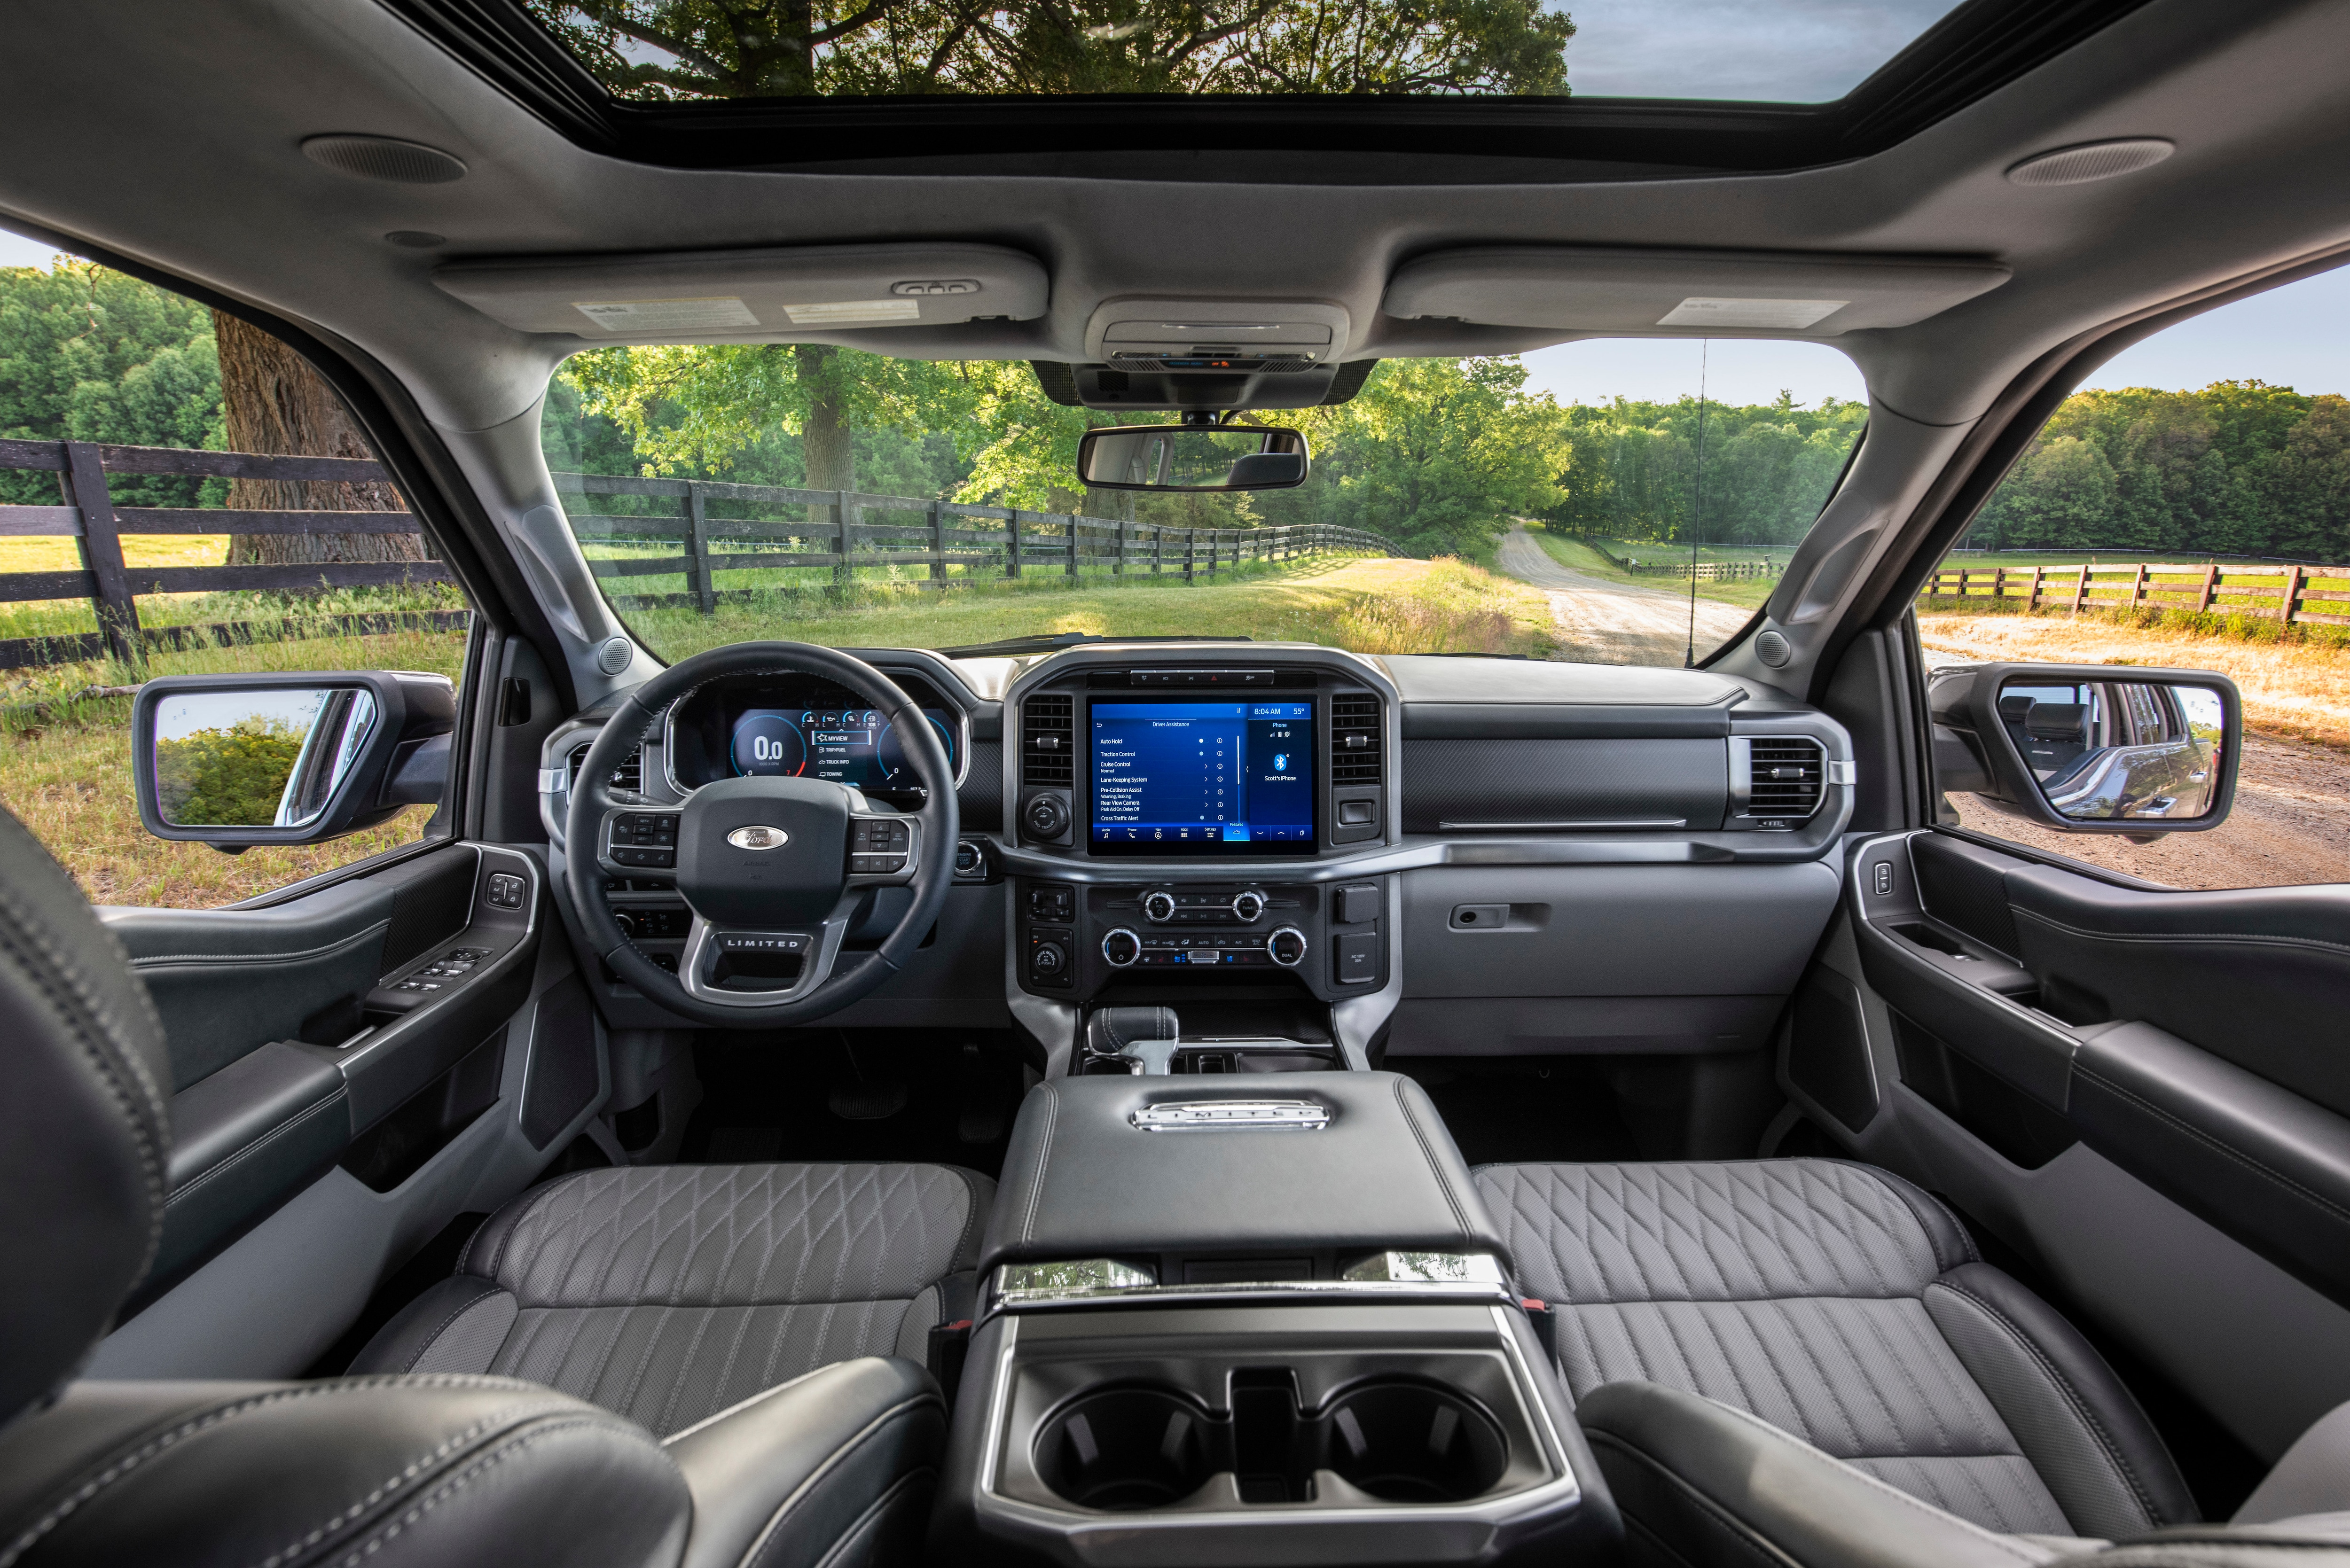 The interior speaks of style, comfort, utility and technology. Ford says the F-150 will be tougher than ever and come with fully connected over-the-air updates. It will be the first Ford vehicles equipped with electronic systems.